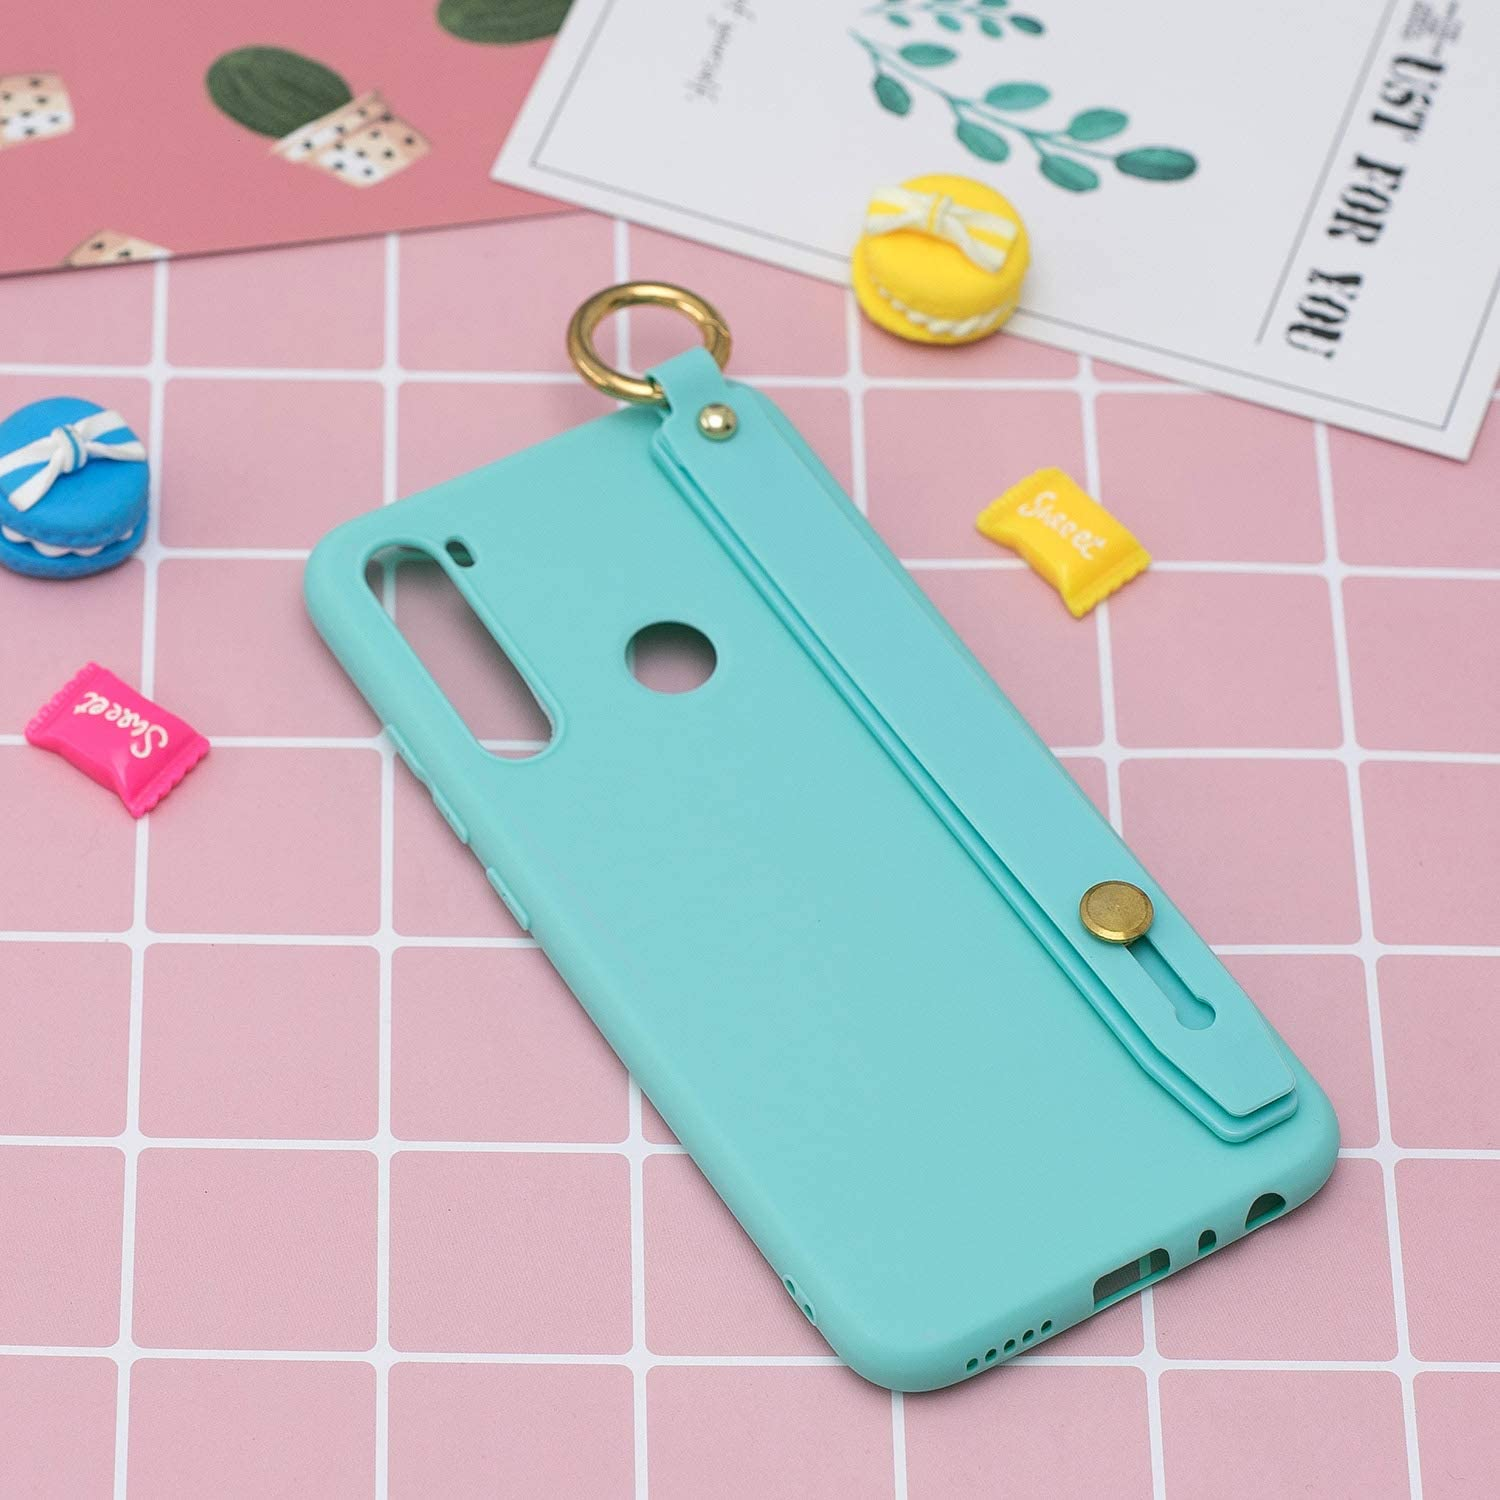 Metermall New for For Redmi 8/8A/Note 8T Mobile Phone Cover Matte TPU Shell with Wrist Rope All-round Protection Case Anti-scratch Shockproof 10 beans green Redmi 8 8 light blue,Redmi NOTE 8T